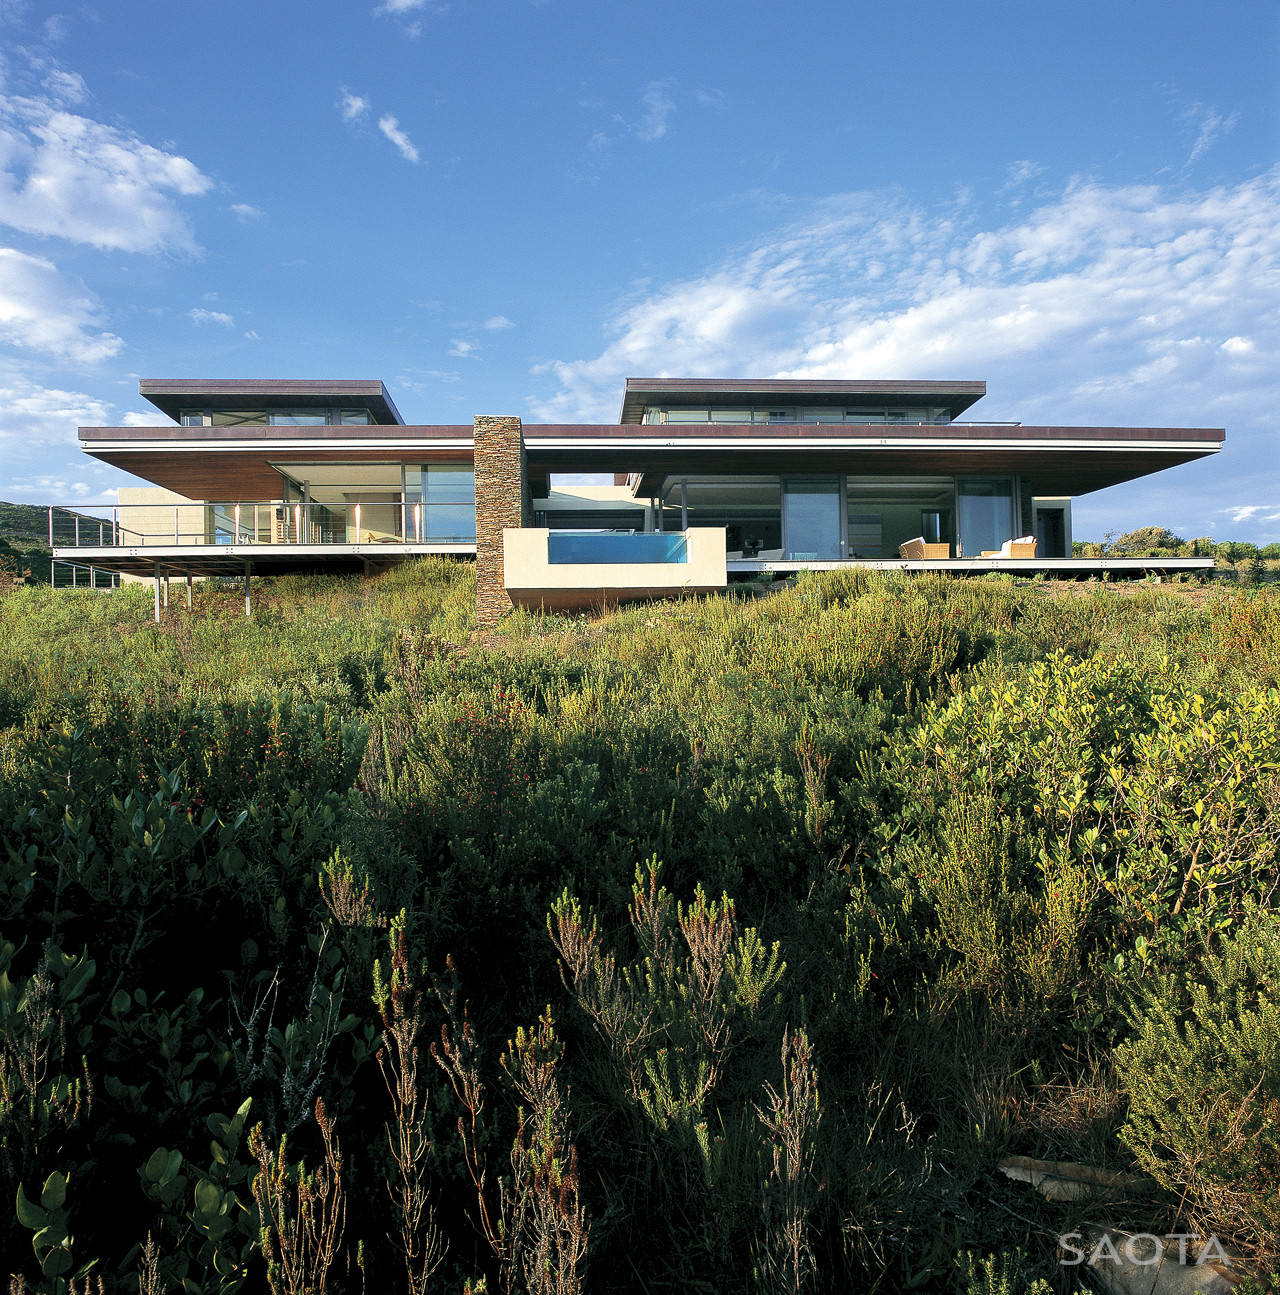 Cove 6 / SAOTA – Stefan Antoni Olmesdahl Truen Architects, Courtesy of SAOTA